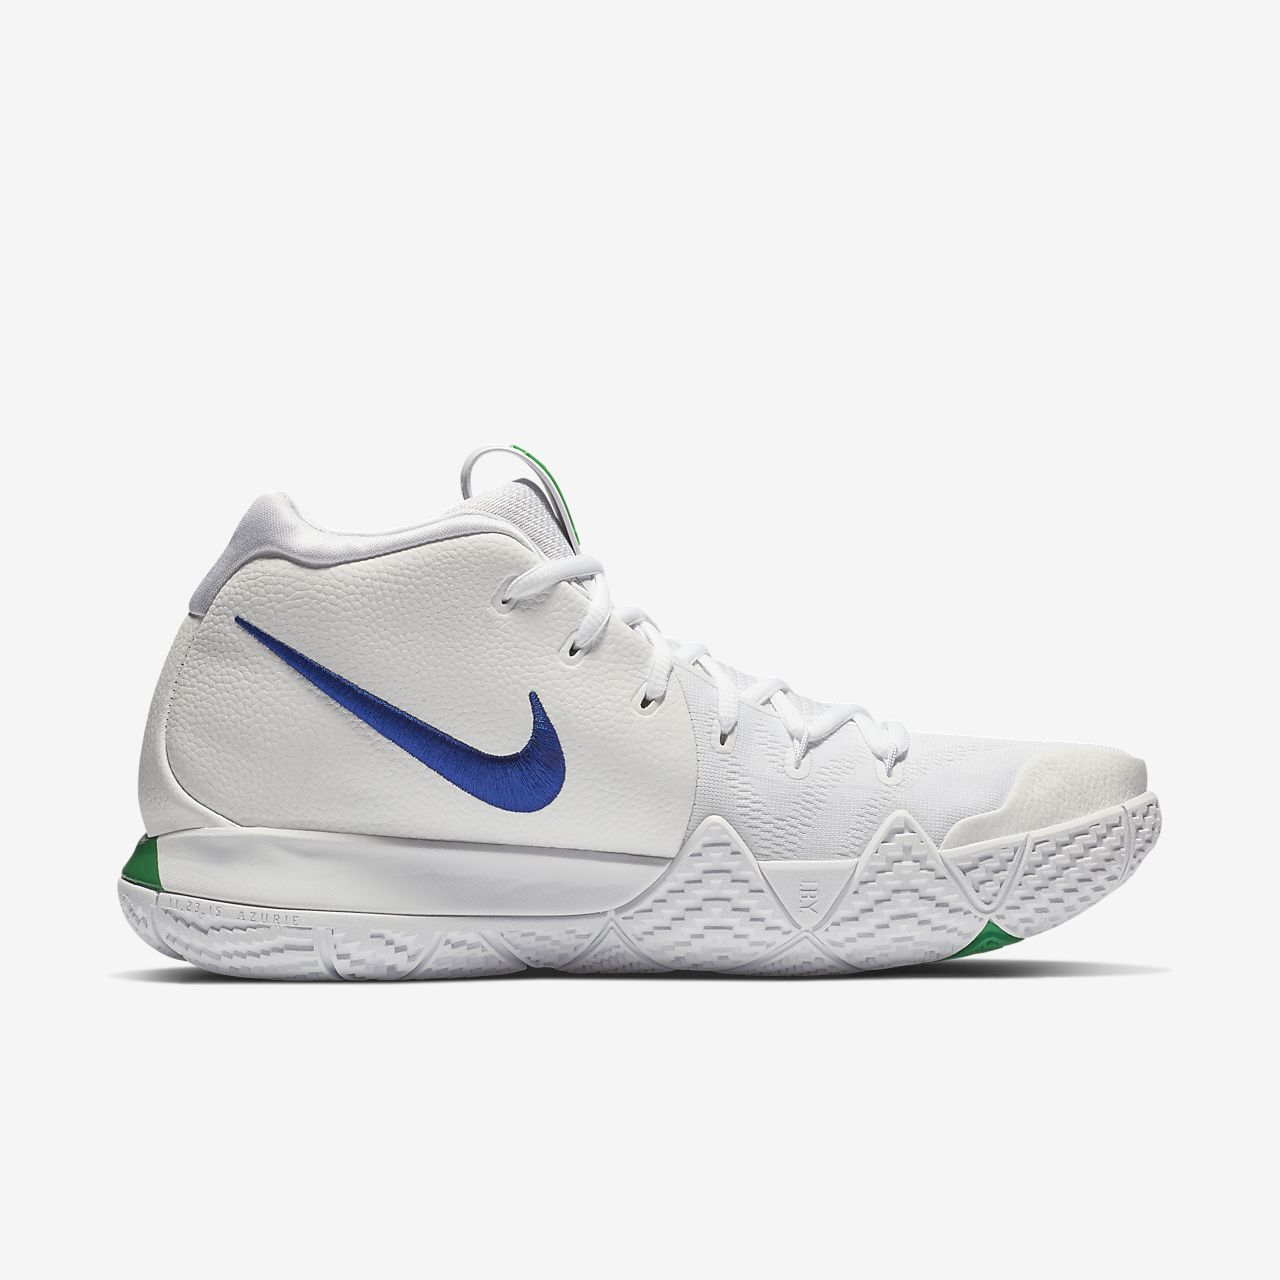 women s nike shoes 8 5 wide offense plays against man 950629